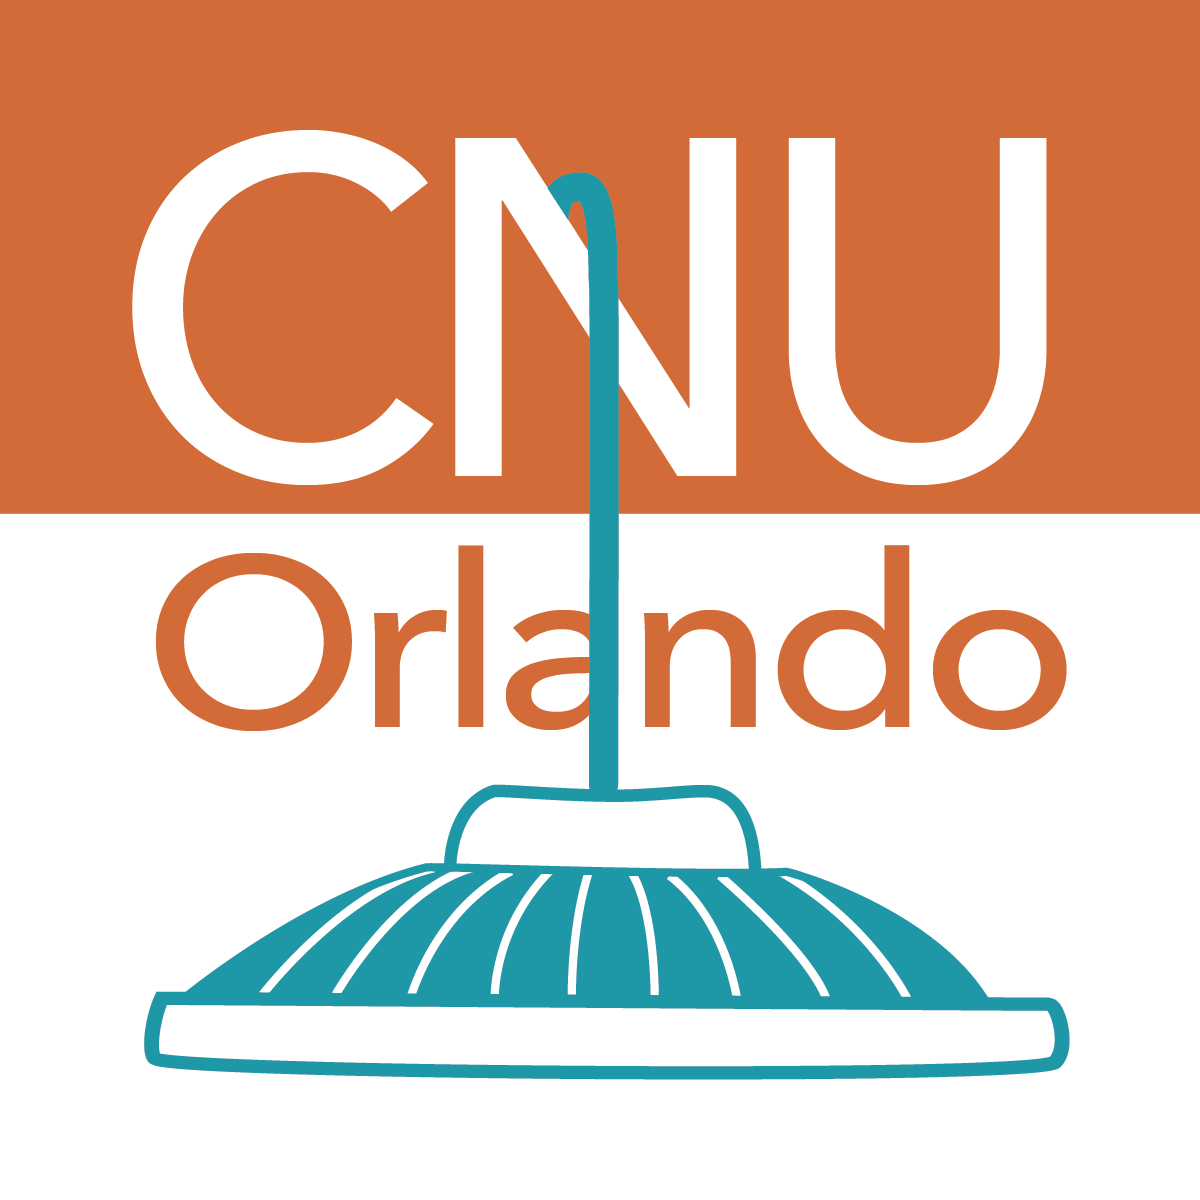 https://d3n8a8pro7vhmx.cloudfront.net/cnu/pages/197/attachments/original/1566599765/CNU_Orlando_Logo_Square_%28UPDATED_BRAND_STD%29_-_2019-01.png?1566599765